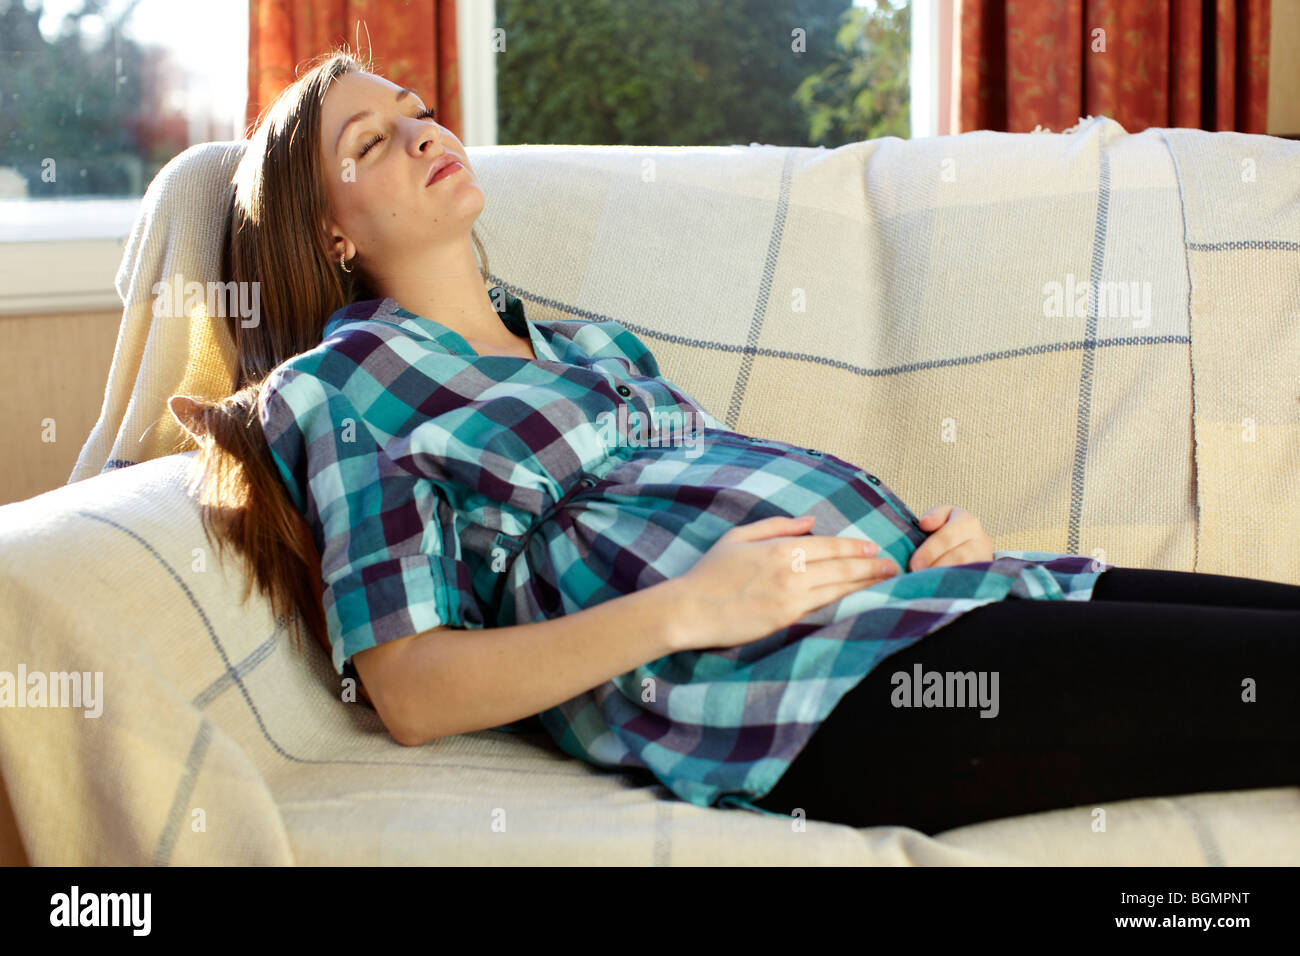 Pregnant woman reading leaflets - Stock Image